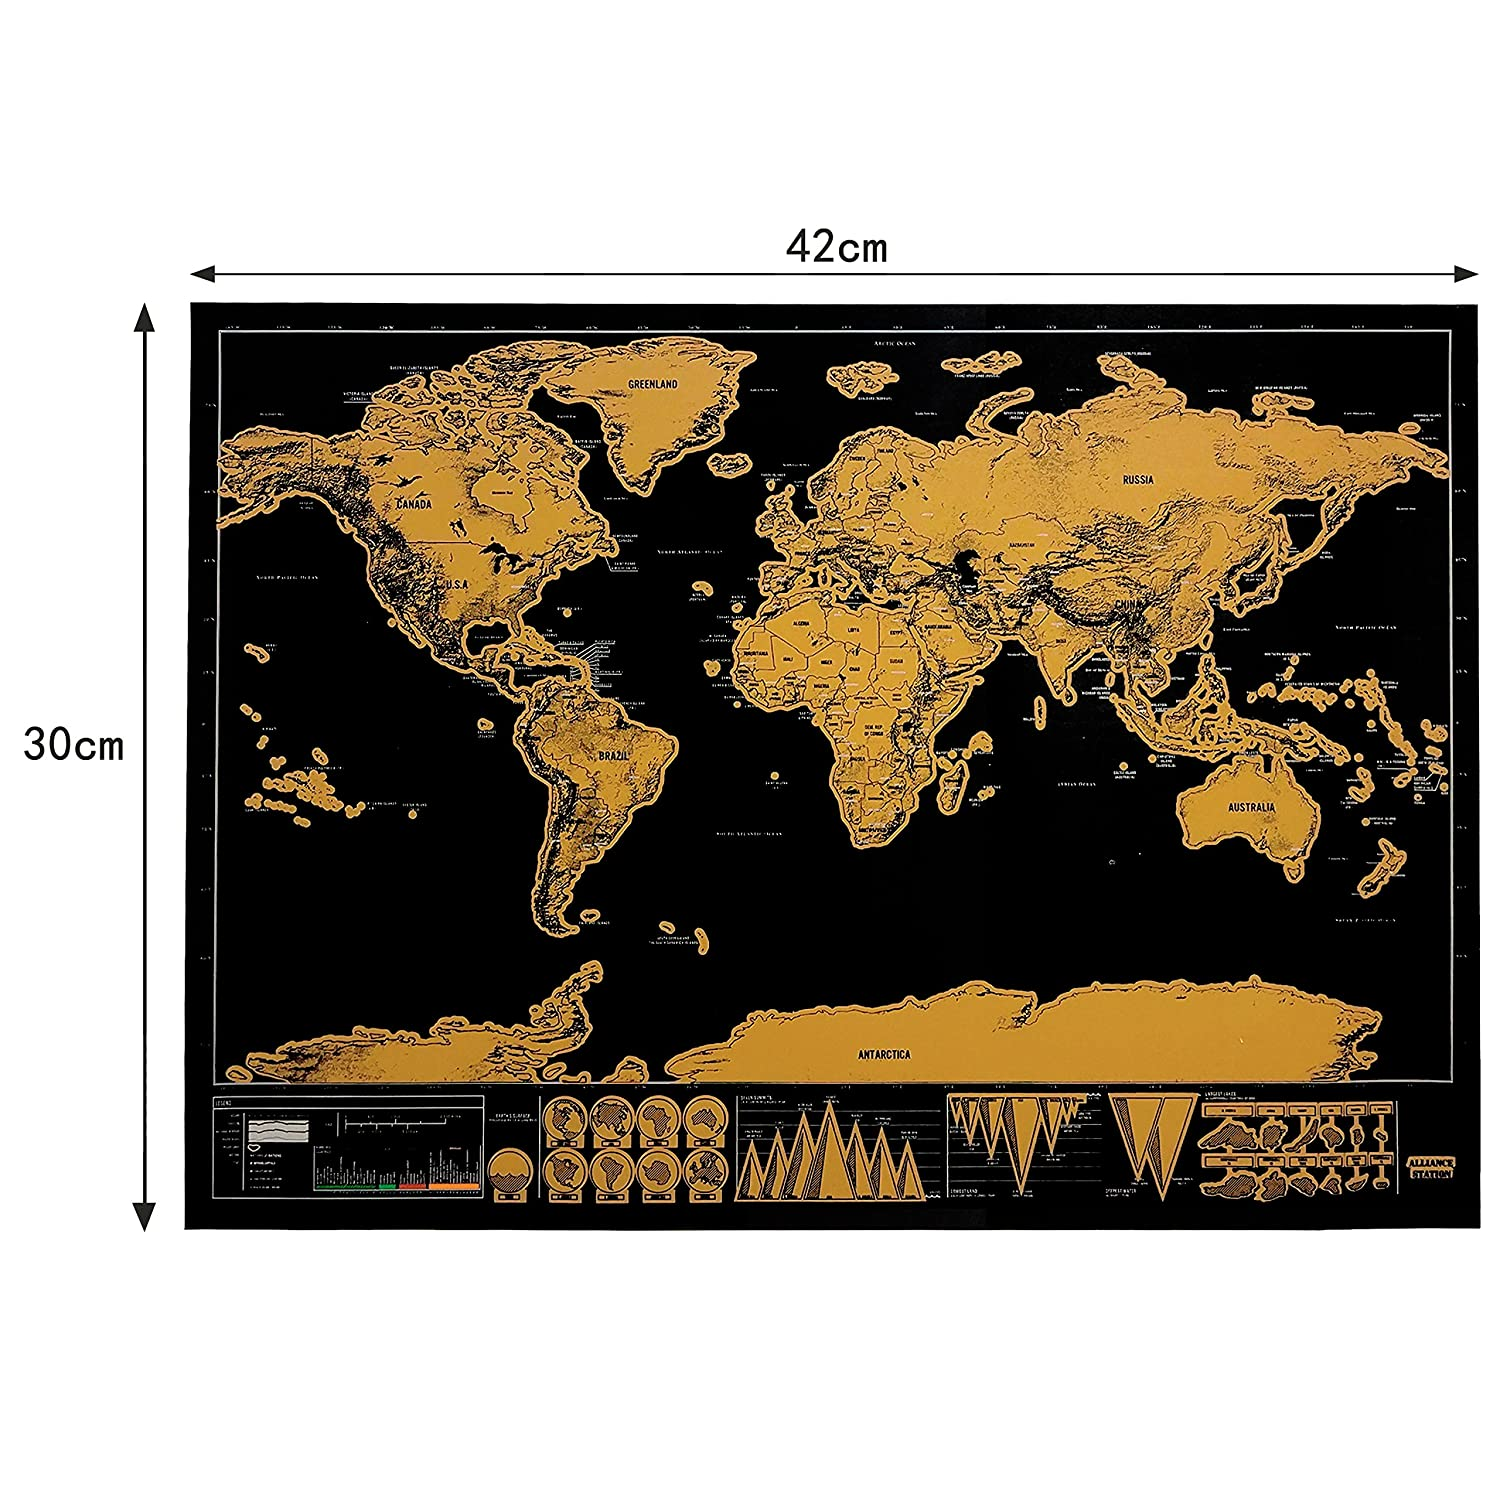 Luxury edition black scrape world map deluxe travel scratch world luxury edition black scrape world map deluxe travel scratch world map travel map poster best present for travelers amazon office products gumiabroncs Choice Image